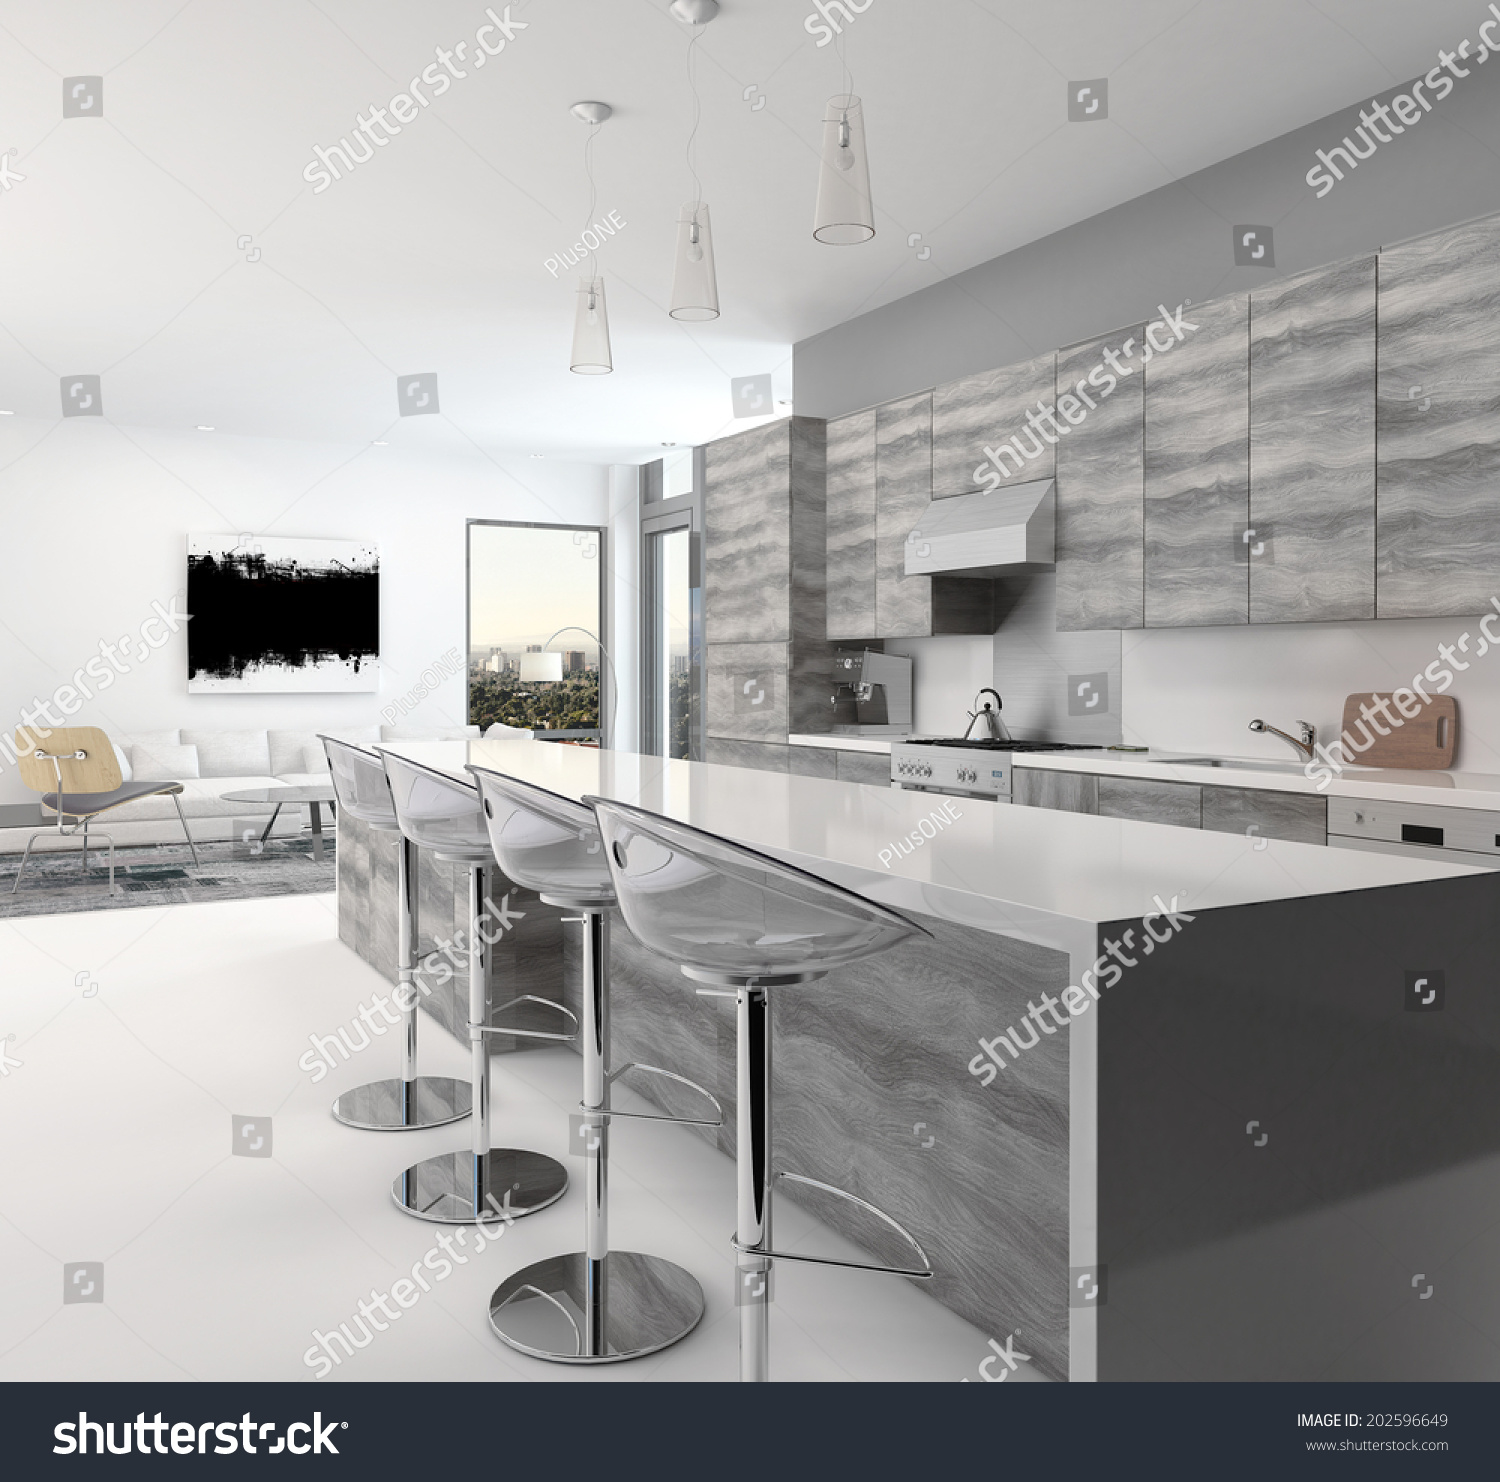 Rustic Open Plan Kitchen: Rustic Gray Style Wooden Open-Plan Kitchen Interior With A